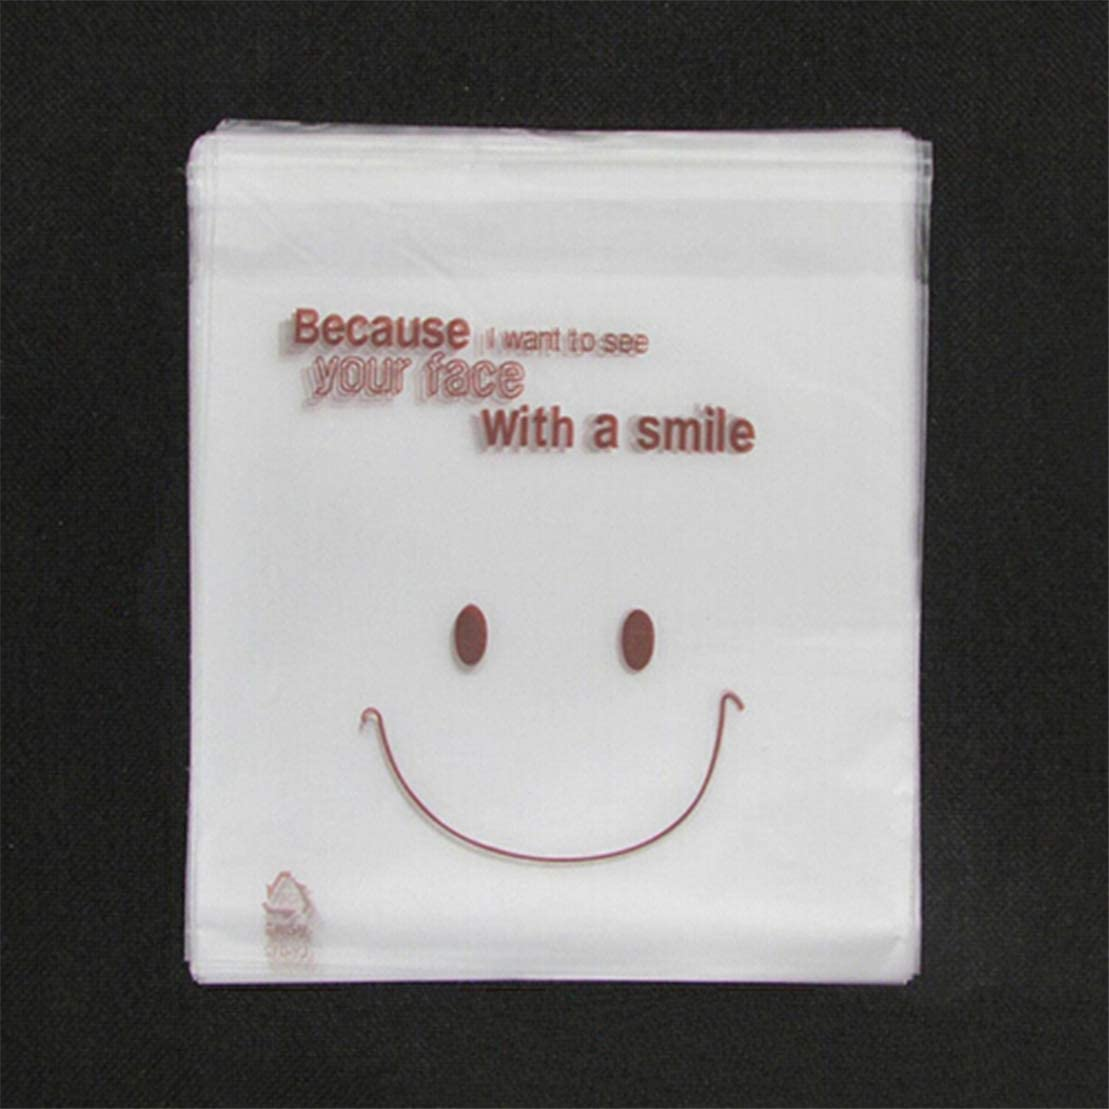 Kissherely 50Pcs Transparent Cookie Bag Smiley Face Pattern Self-adhesive Sweets Candy Packaging Plastic Bag Birthday Party Gift Pouch